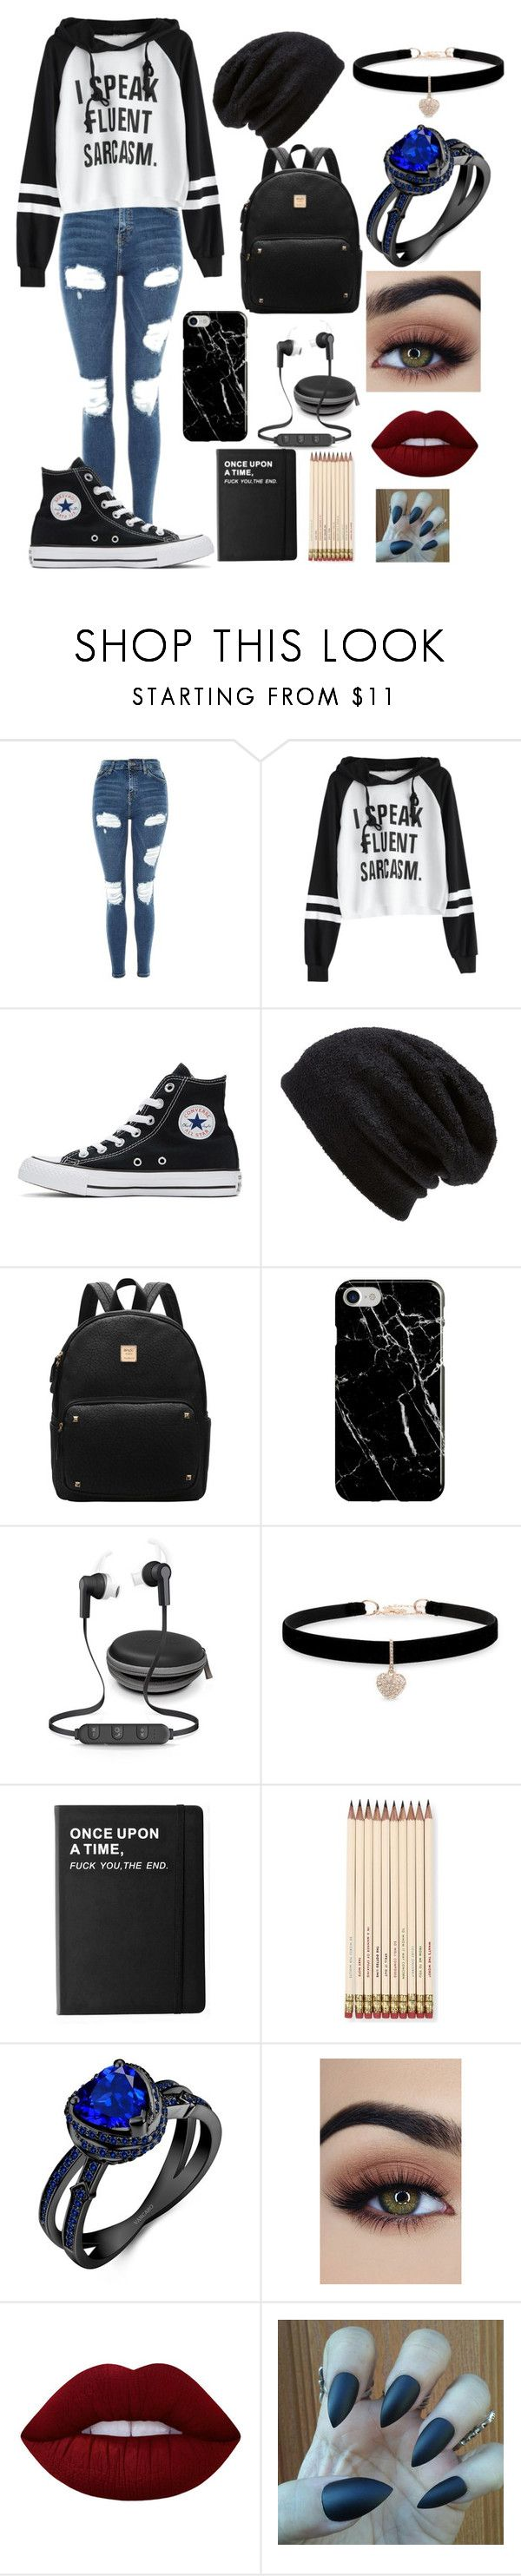 """:))"" by aesthetic-fashion on Polyvore featuring Topshop, Converse, Barefoot Dreams, Recover, Betsey Johnson, Killstar, Kate Spade and Lime Crime"